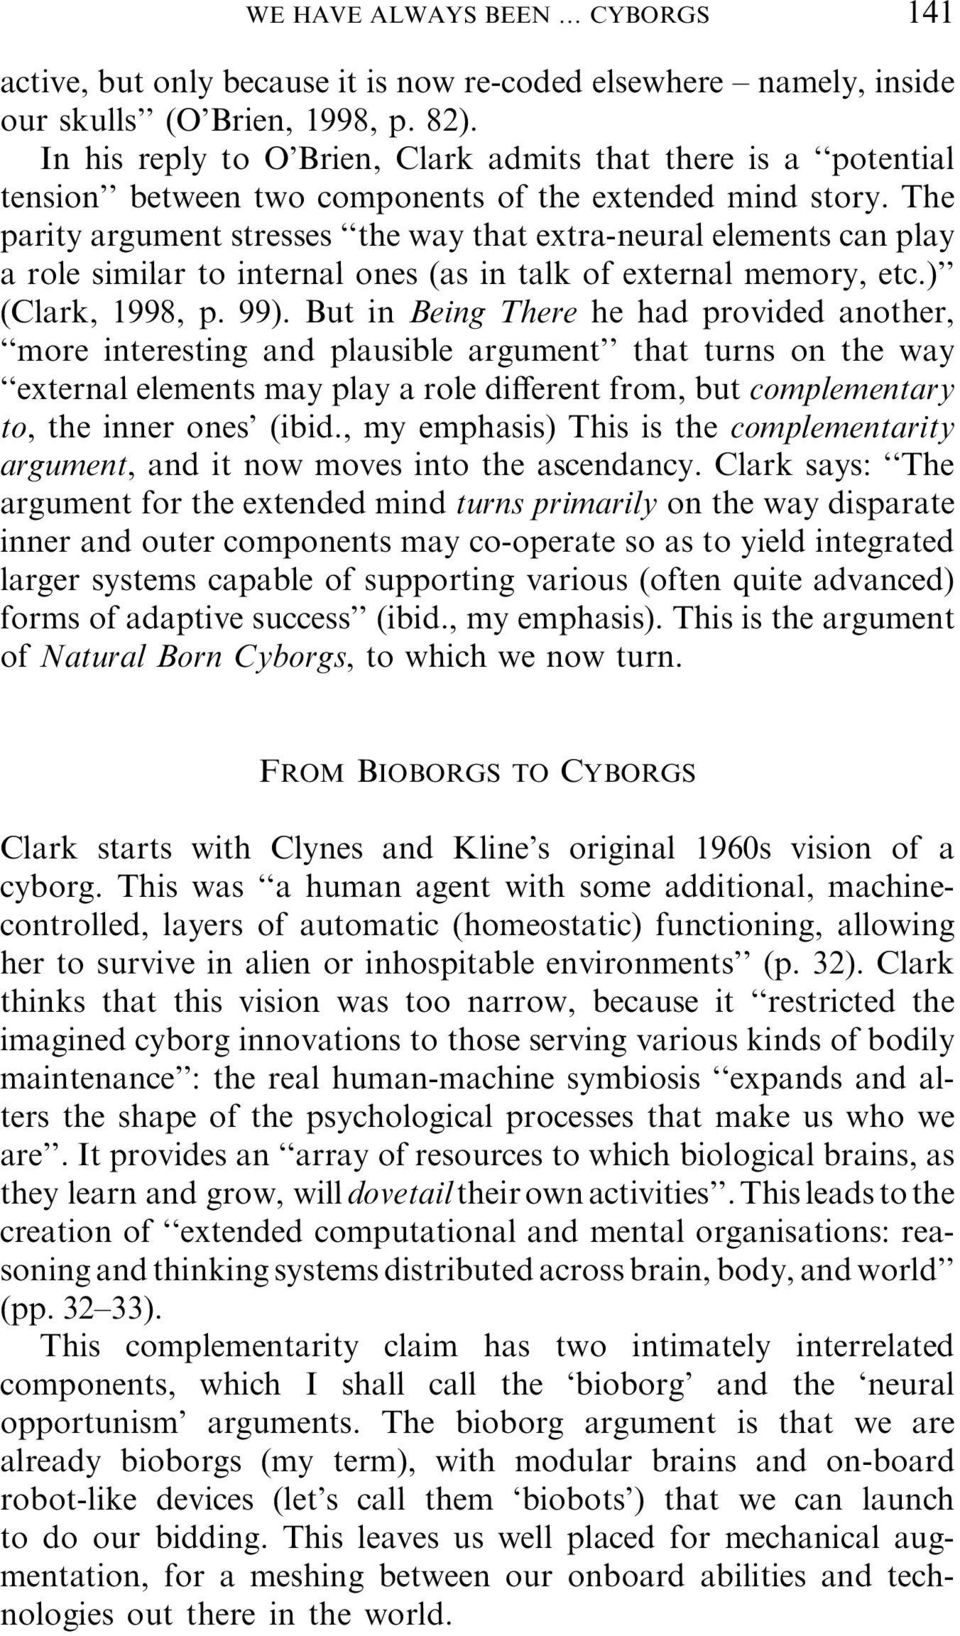 The parity argument stresses the way that extra-neural elements can play a role similar to internal ones (as in talk of external memory, etc.) (Clark, 1998, p. 99).